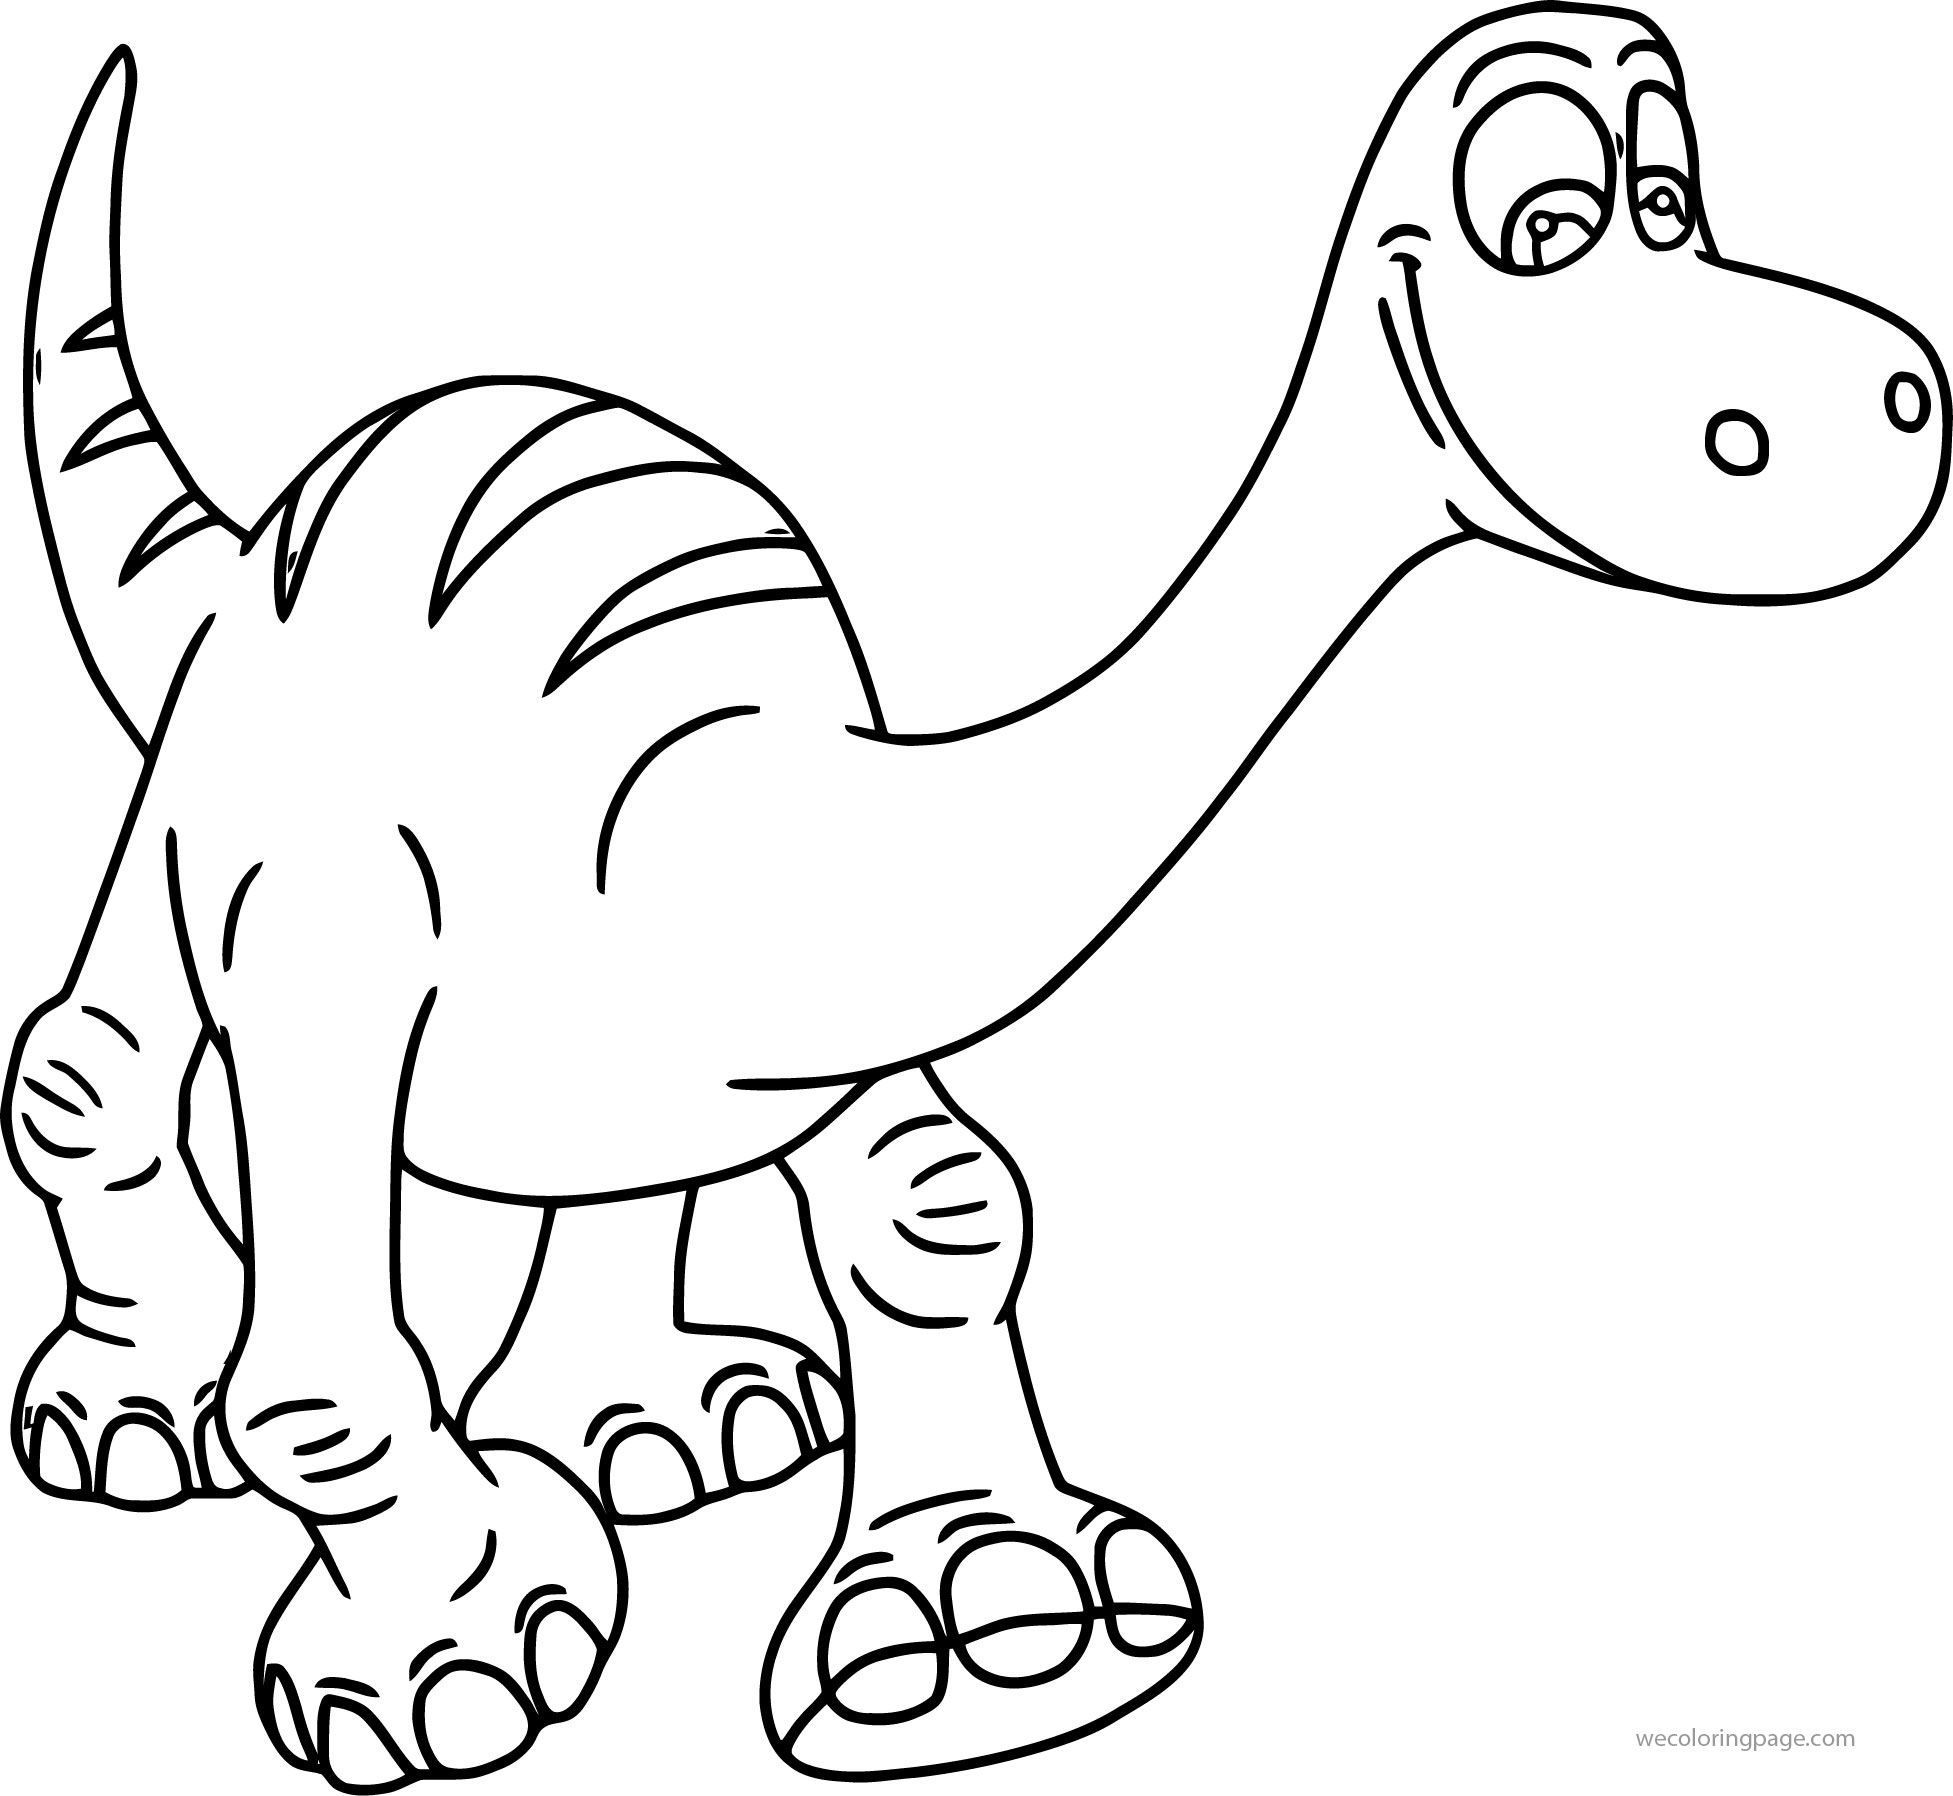 disney dinosaur coloring pages | The Good Dinosaur Disney Coloring Pages | Kolorowanki